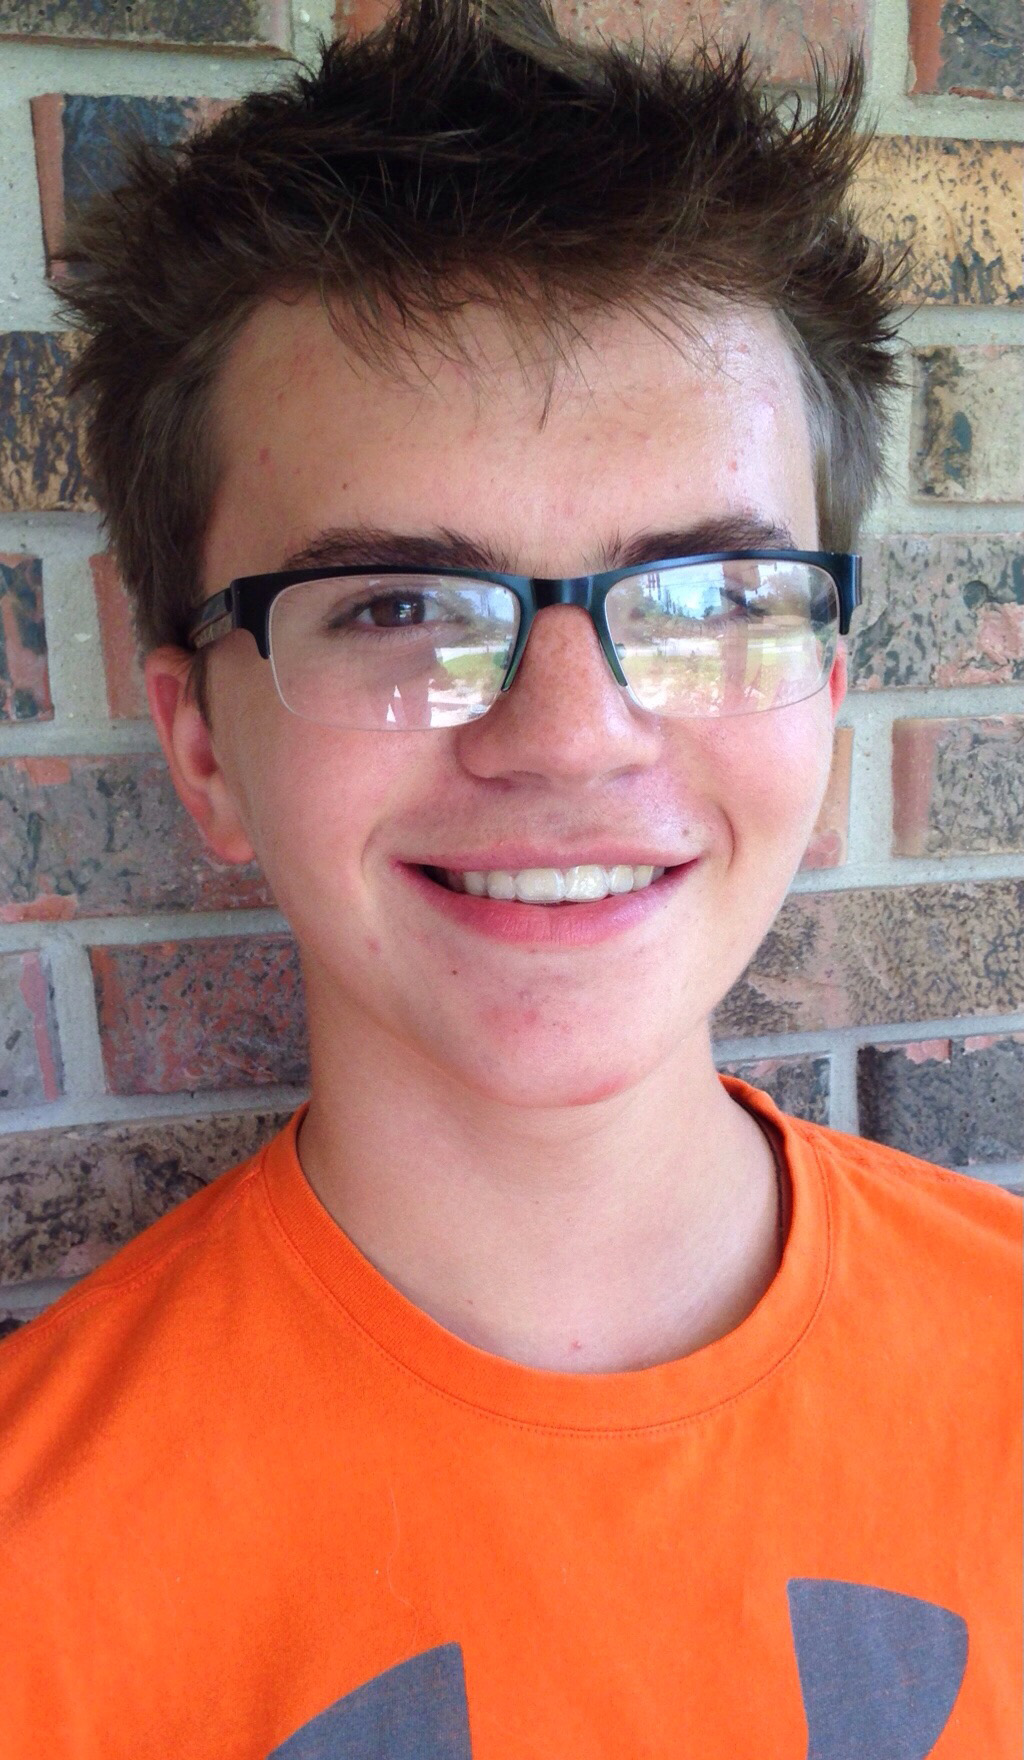 Nathanael Scores 30 on Writing in ACT Test